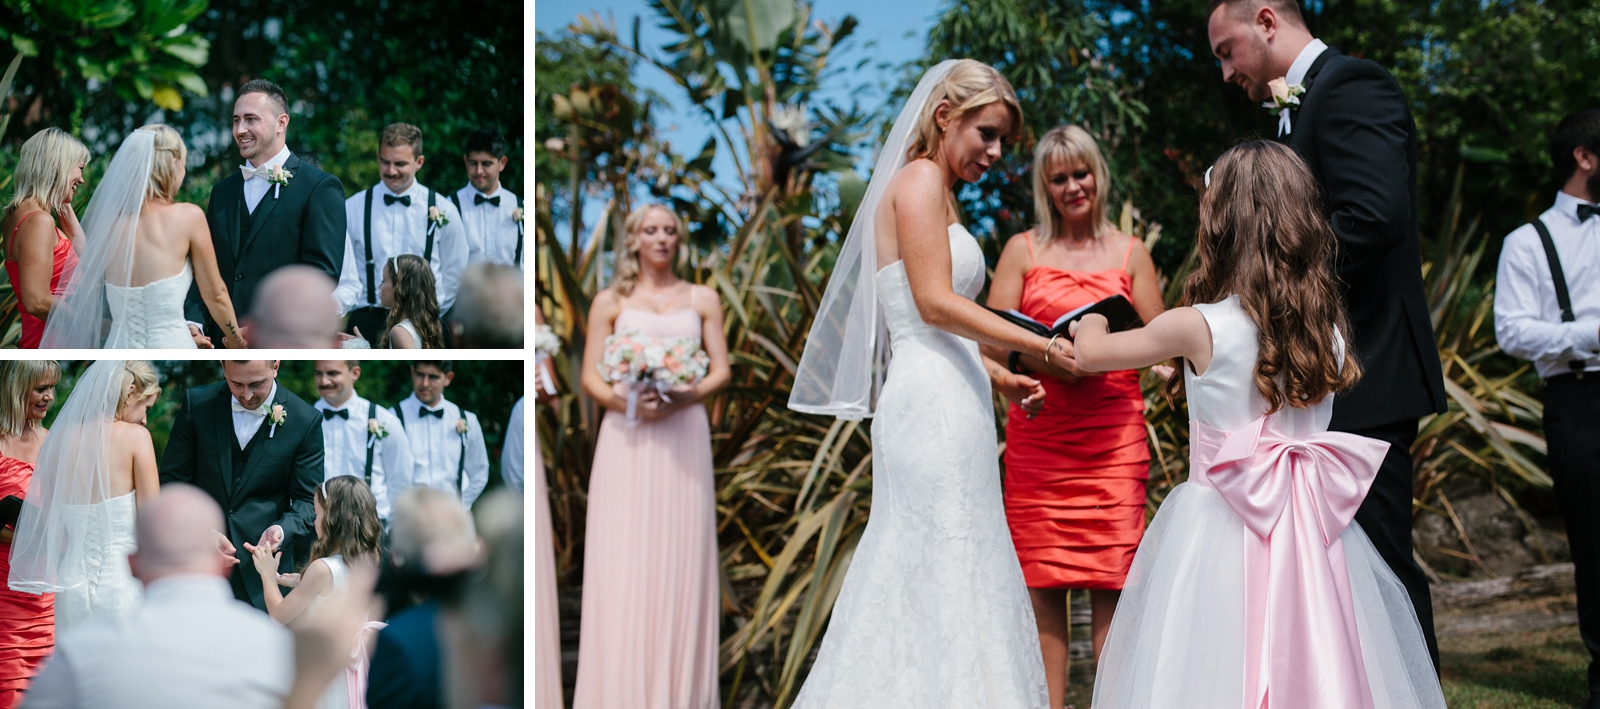 ConnorLaura_Auckland Wedding Photographer_Patty Lagera_0057.jpg